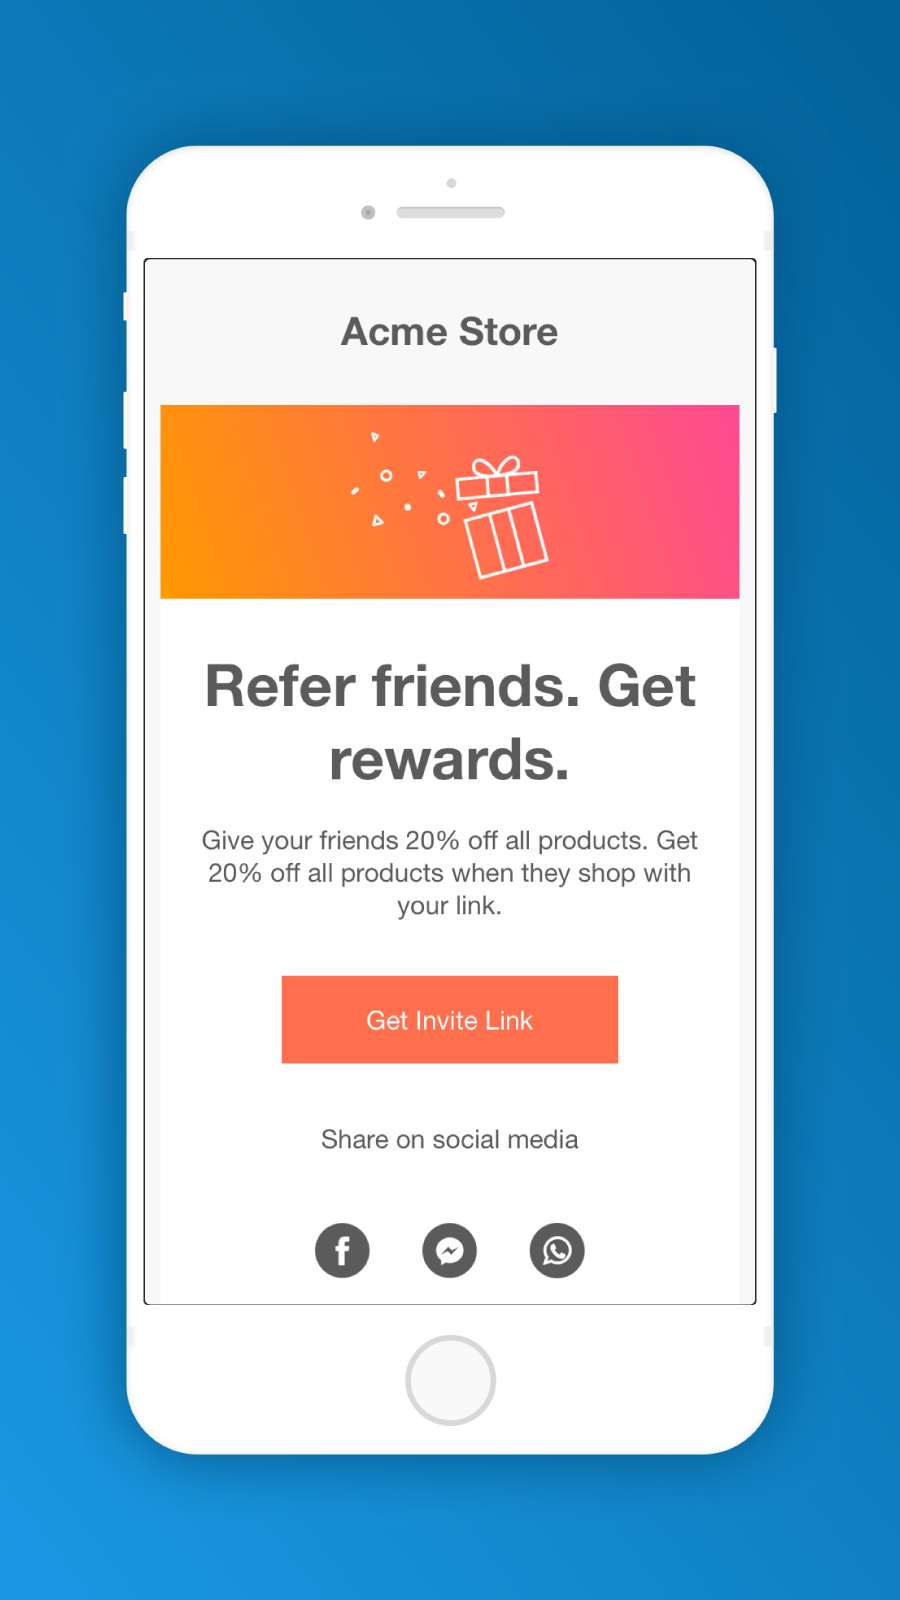 beautiful referral email designs on mobile - referralcandy